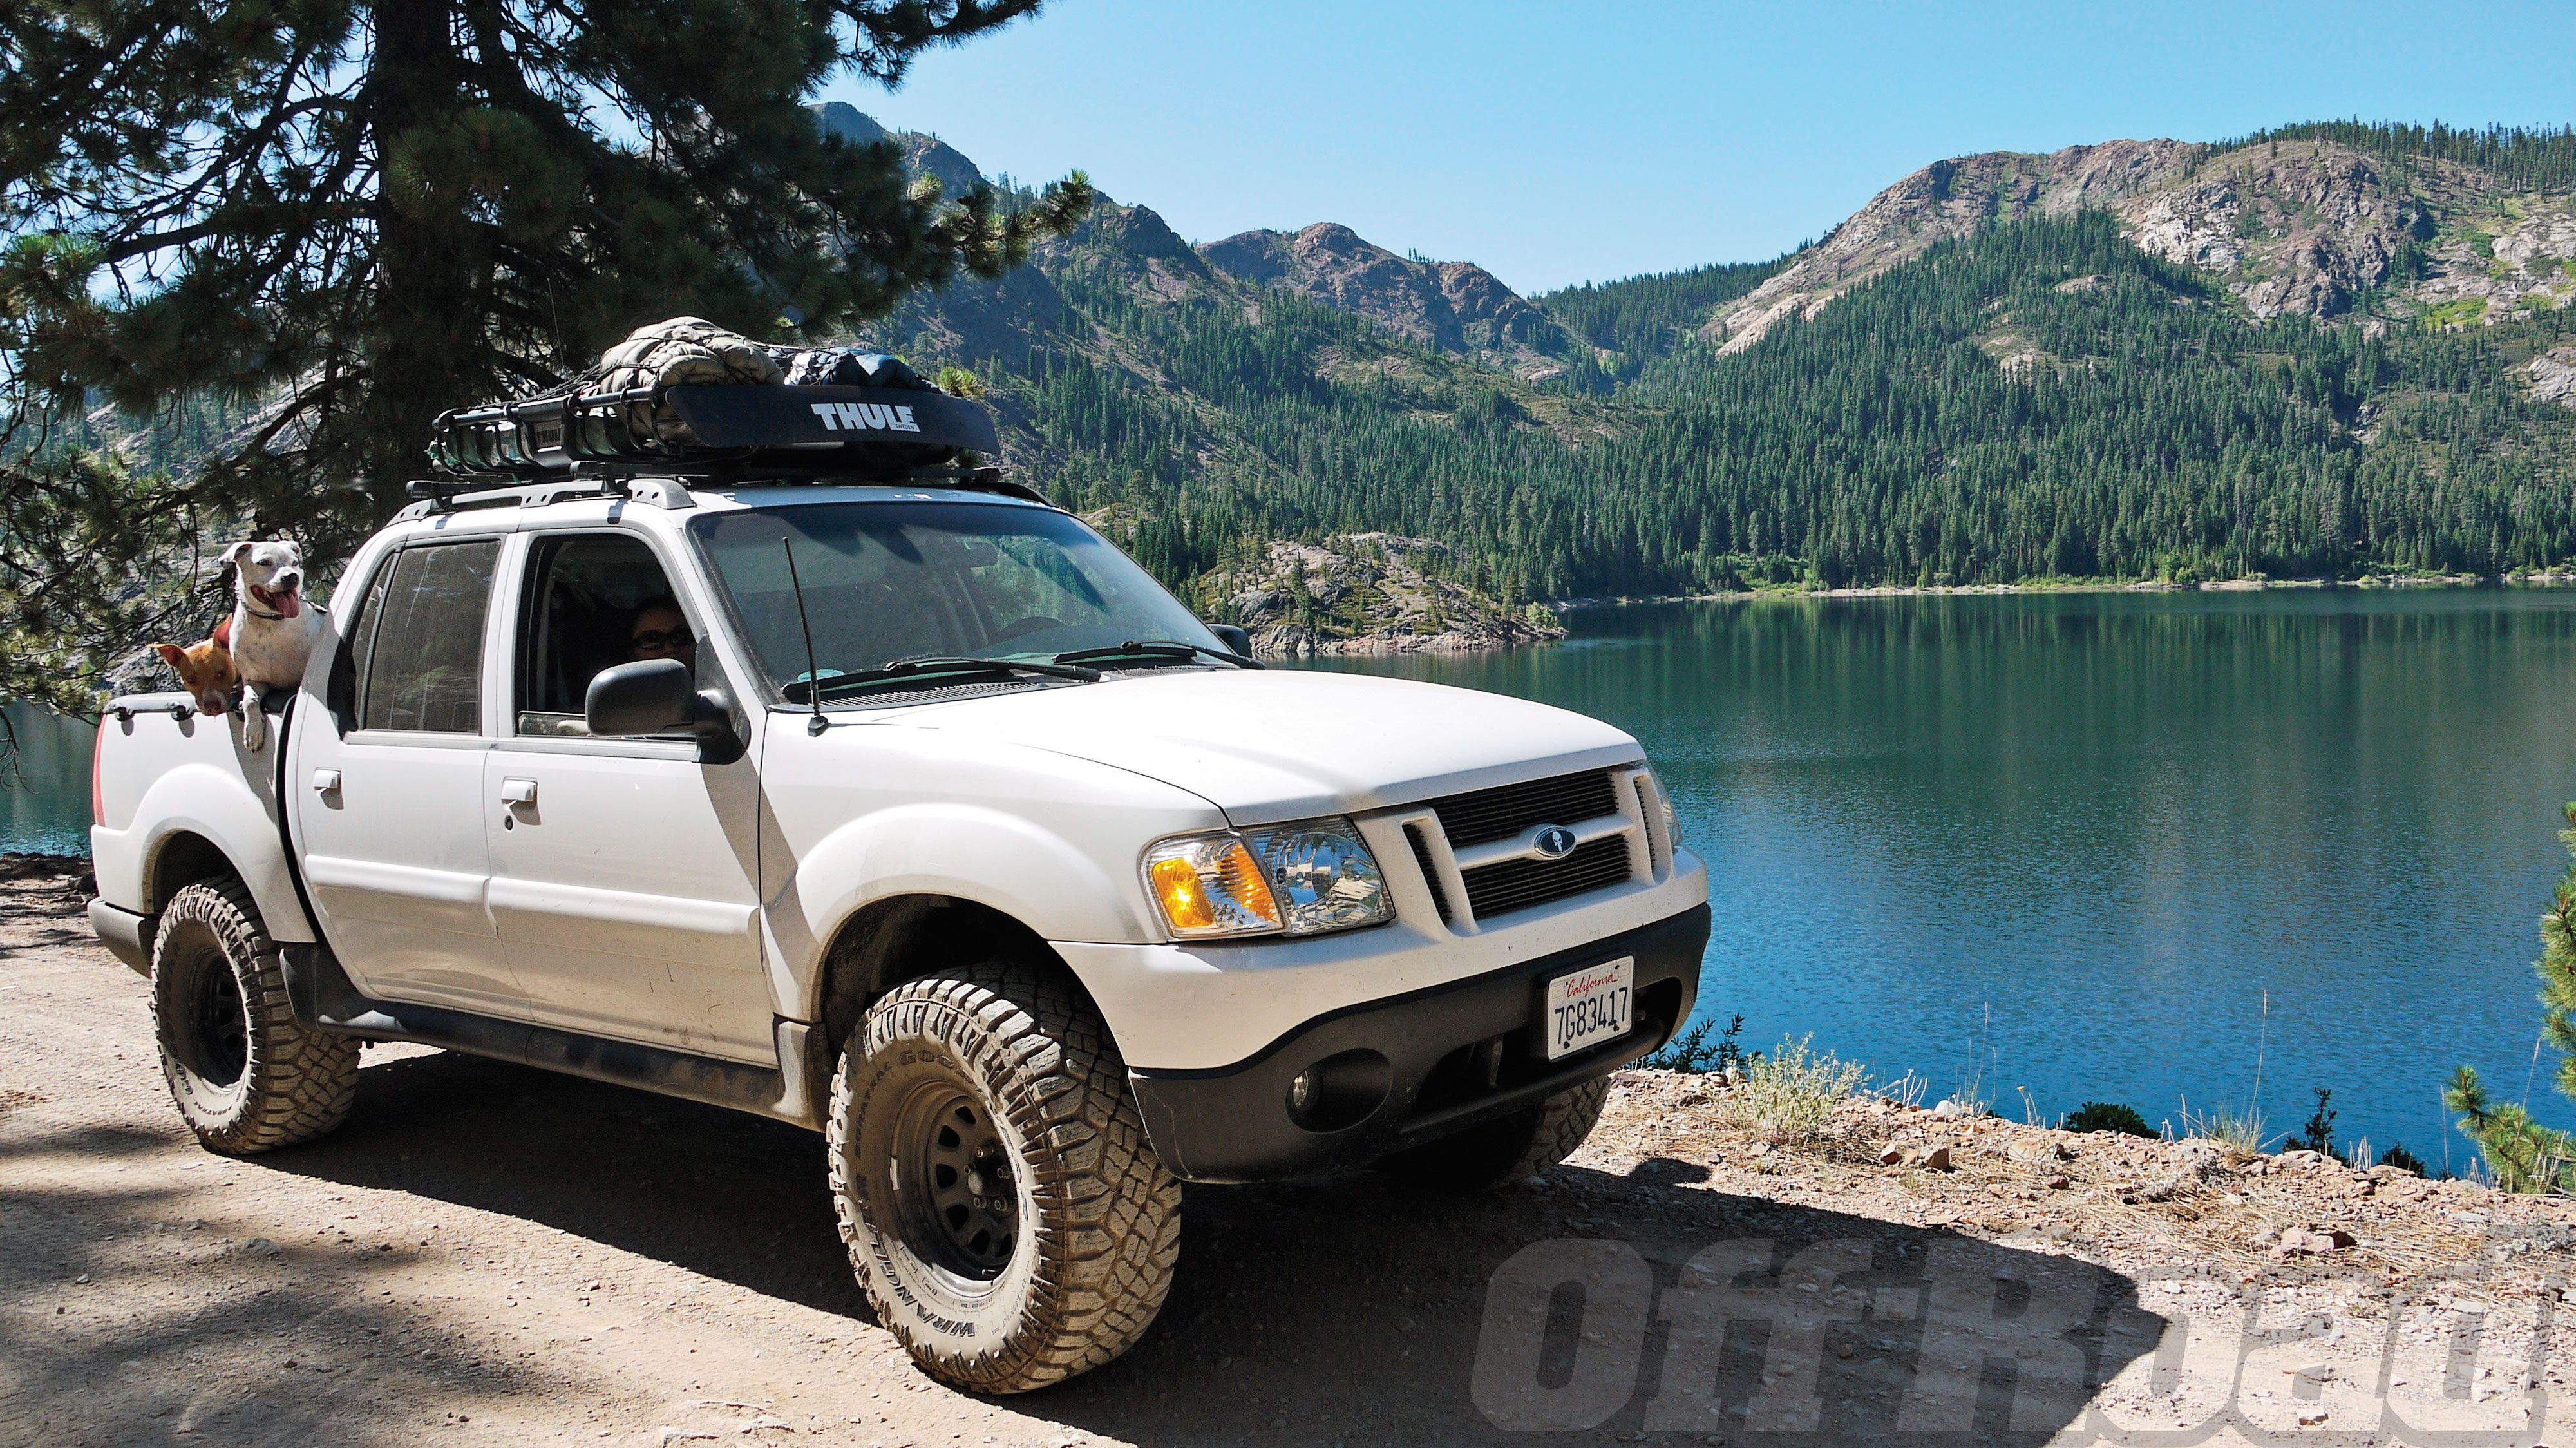 Stunning Ford Explorer Sport Trac With Ccfacfbeeaeb In 2020 Ford